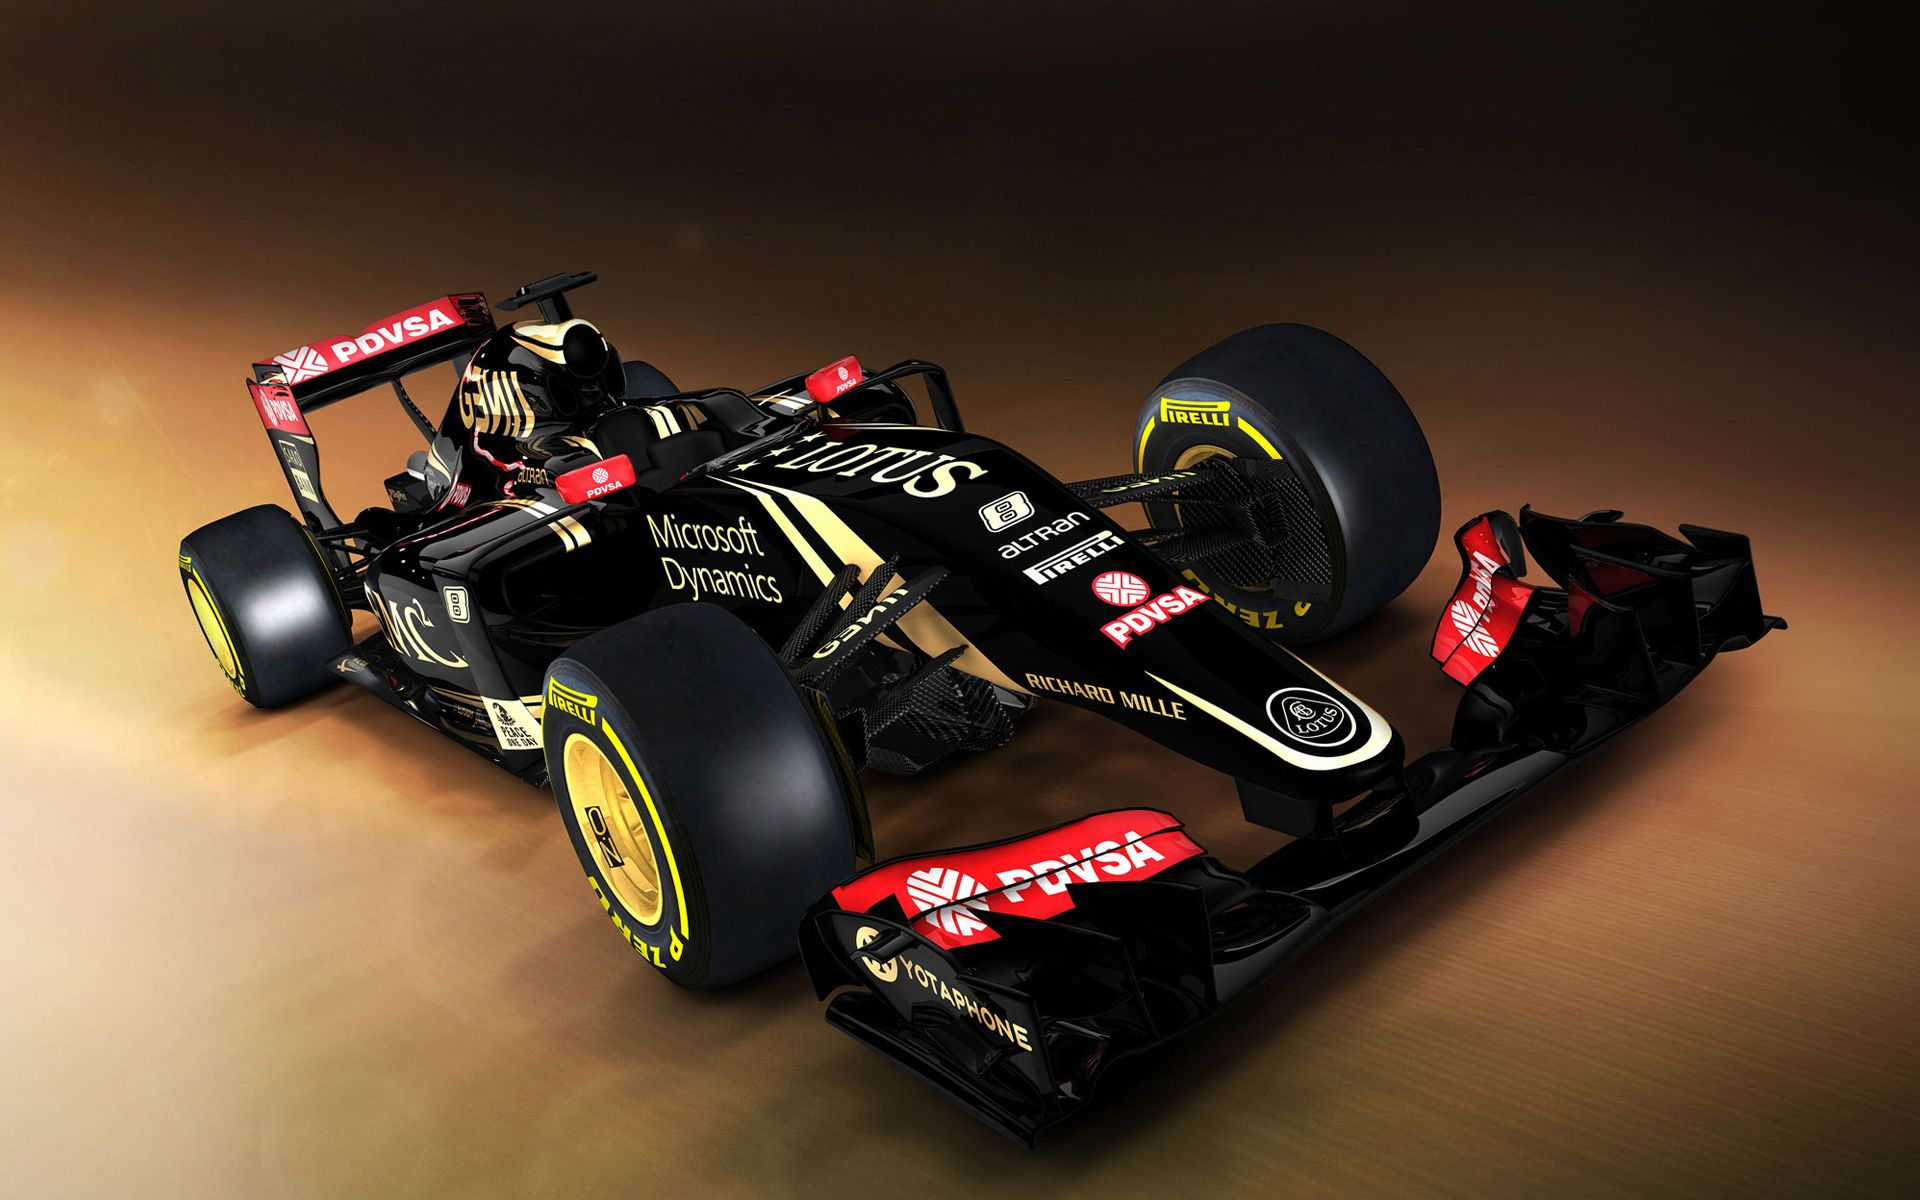 Formula 1 Wallpaper, Full HDQ Formula 1 Pictures and Wallpapers